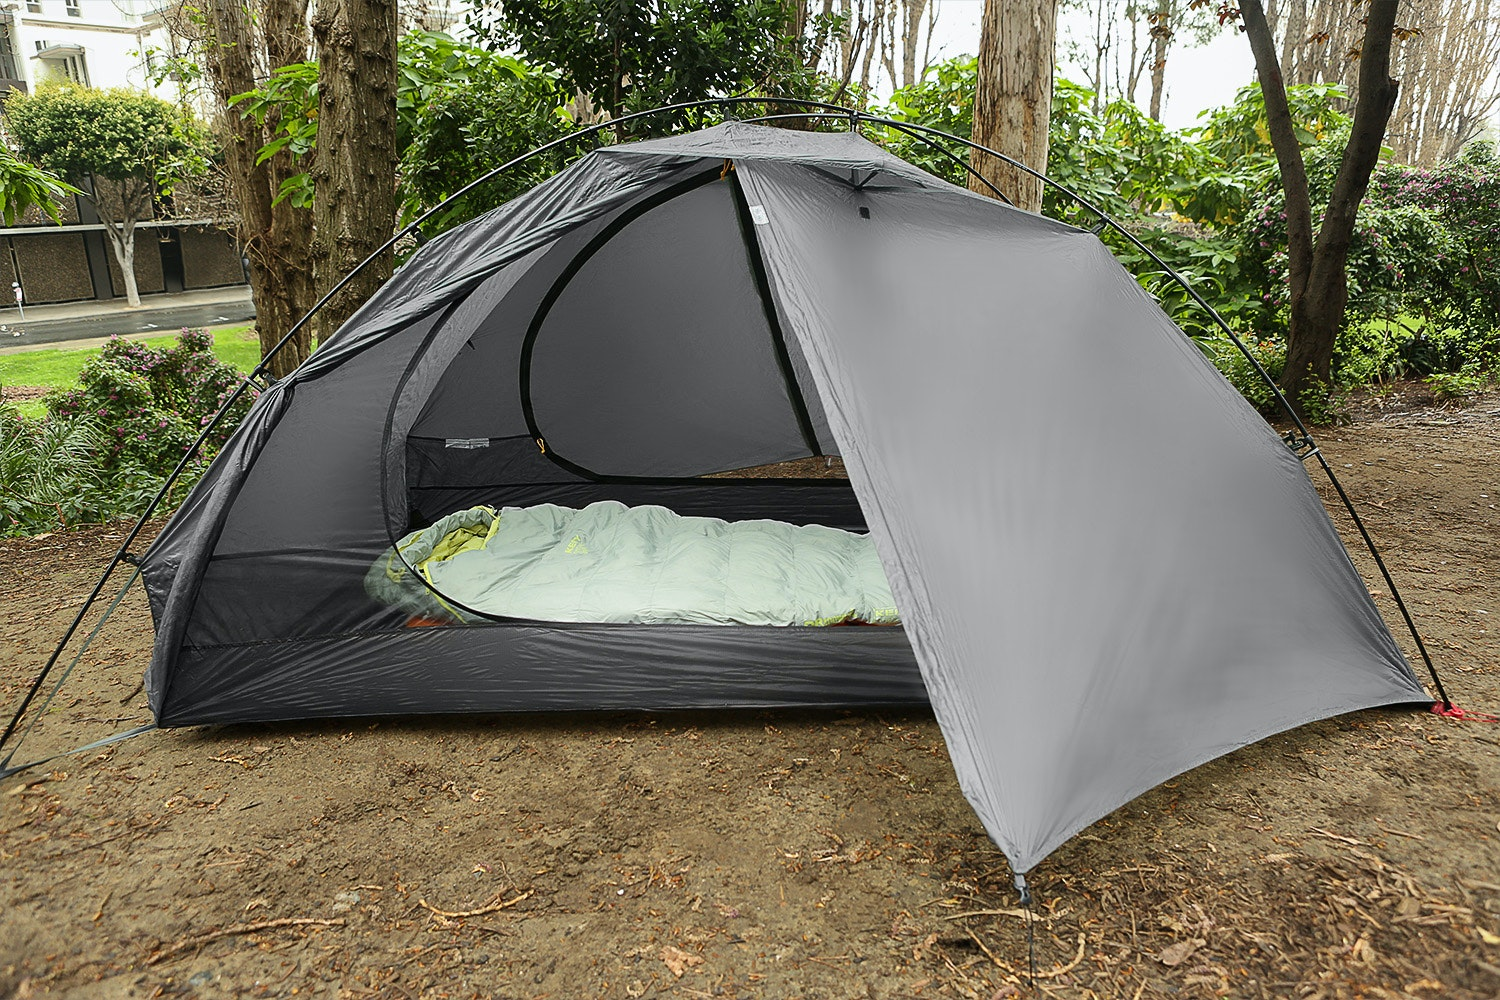 Big Sky Mirage 2P Tent & Big Sky Mirage 2P Tent | Price u0026 Reviews | Massdrop